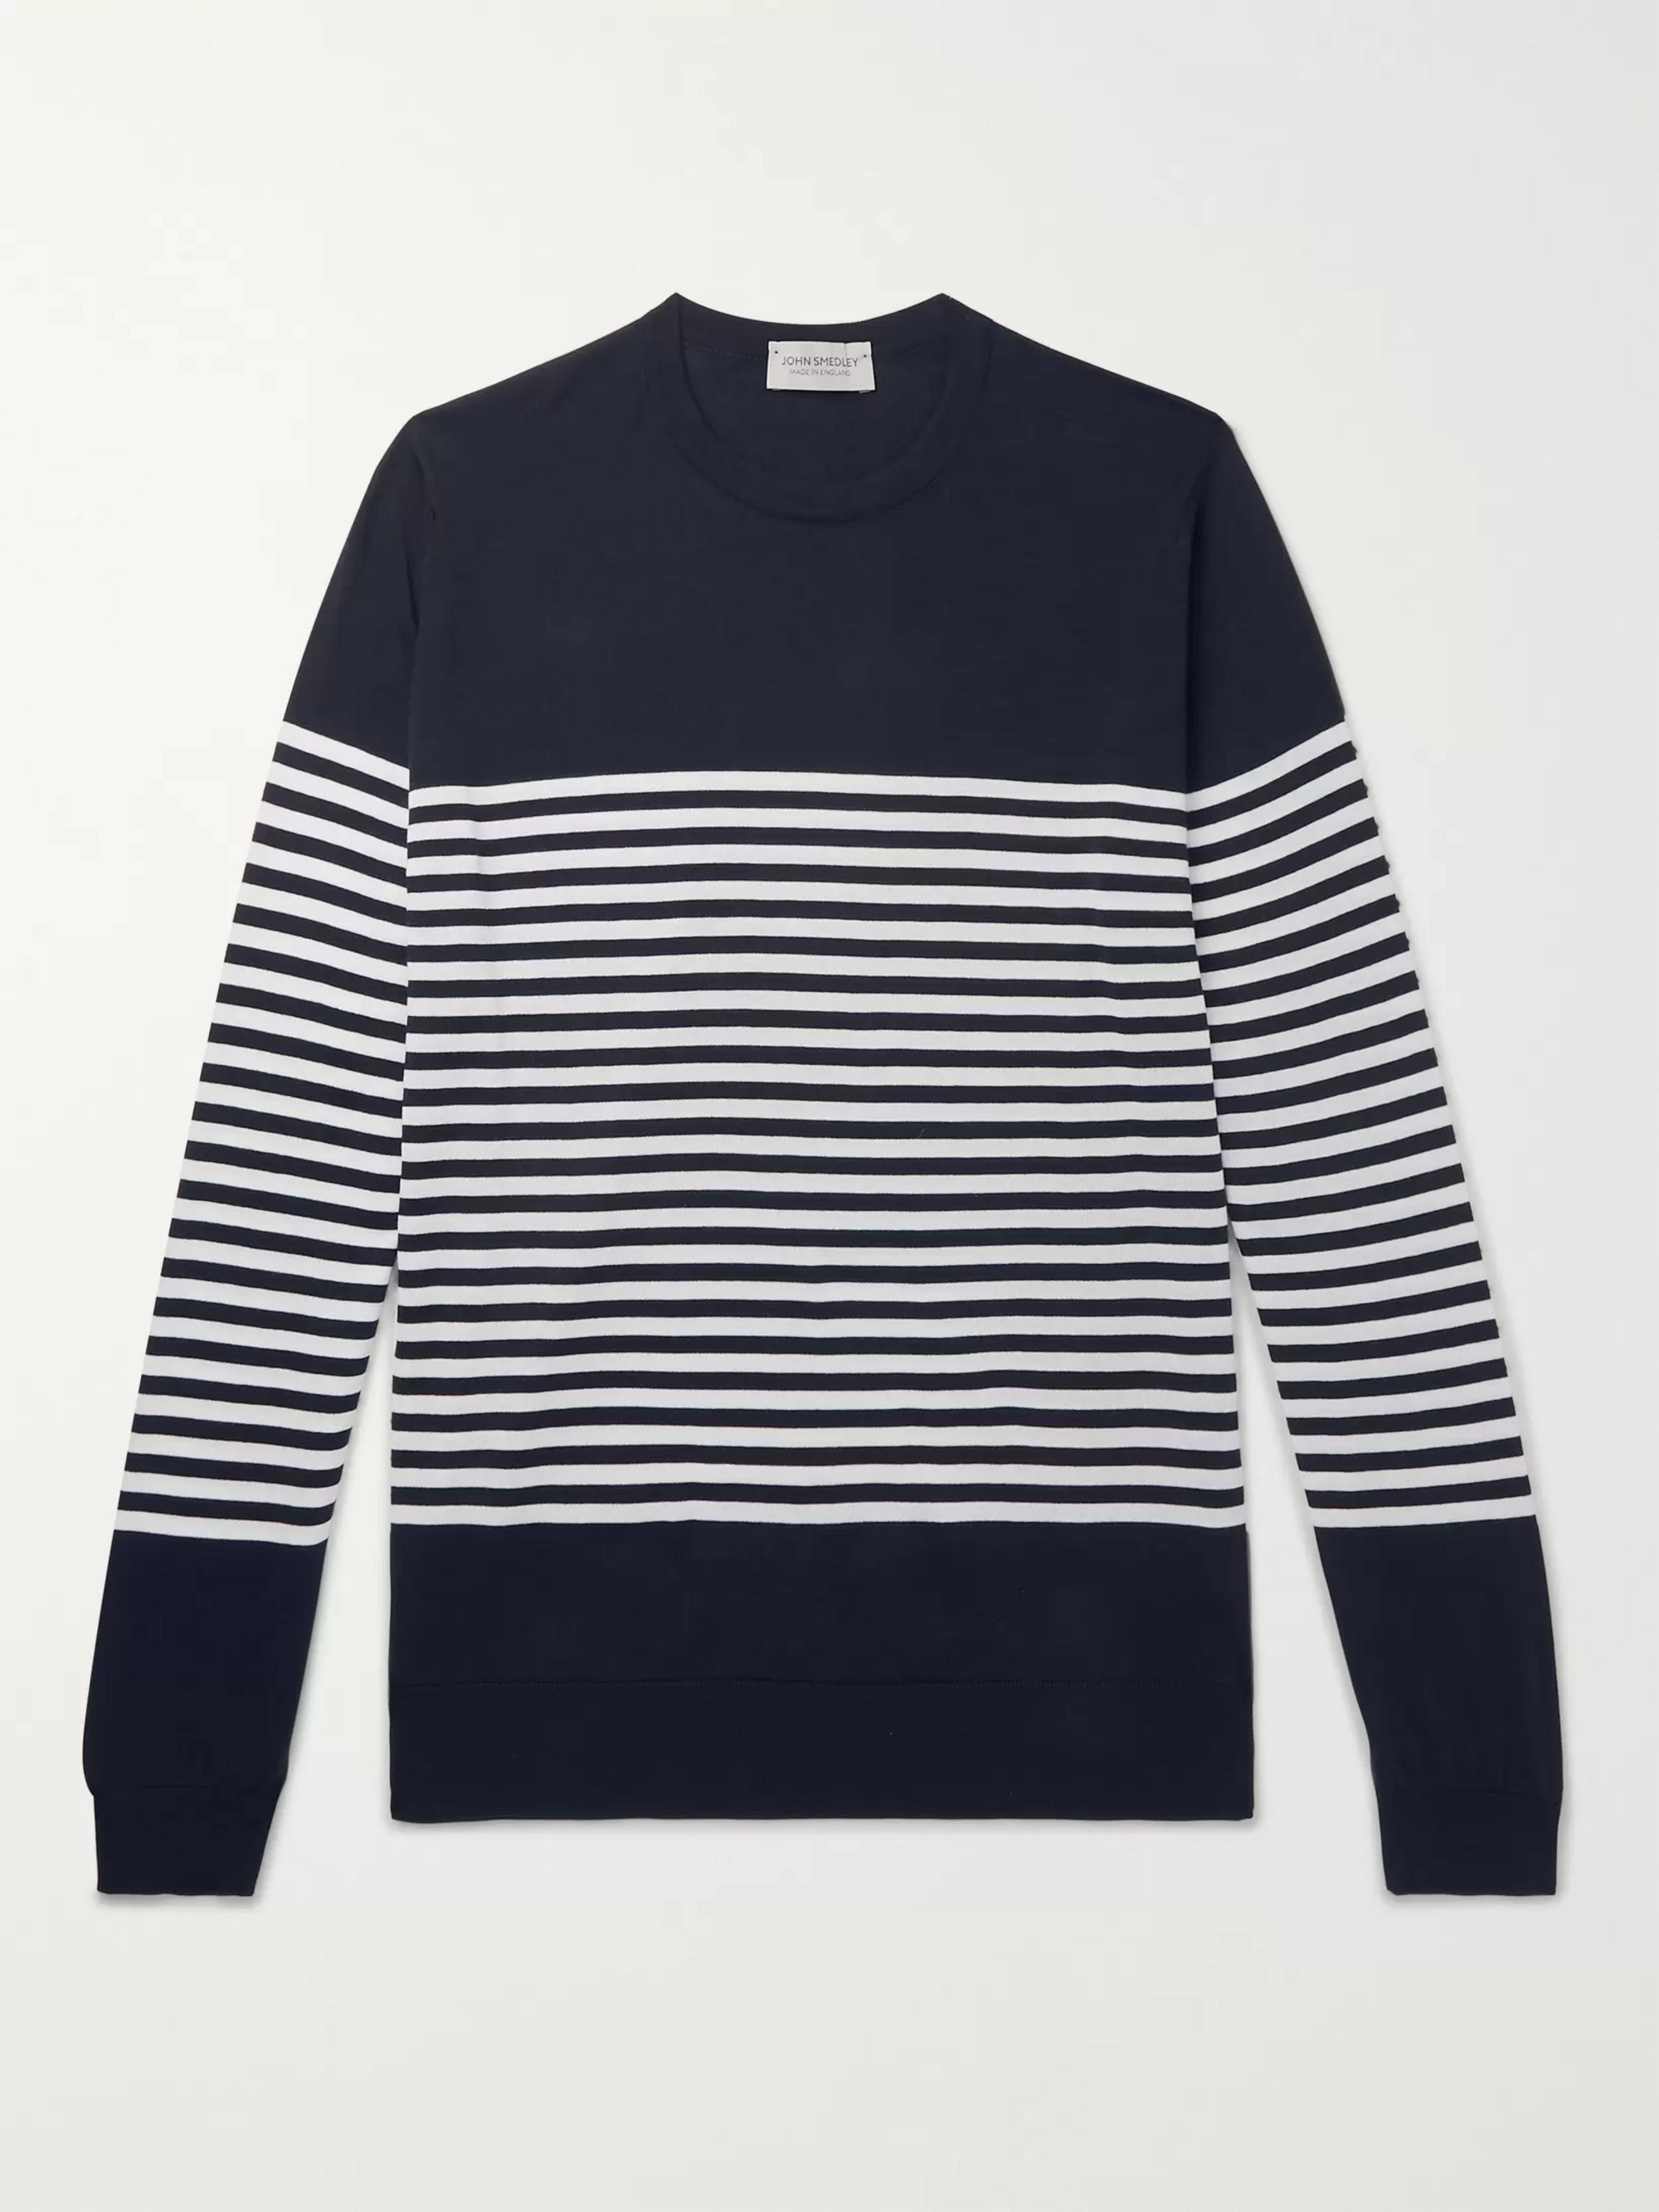 John Smedley Palter Striped Sea Island Cotton Sweater